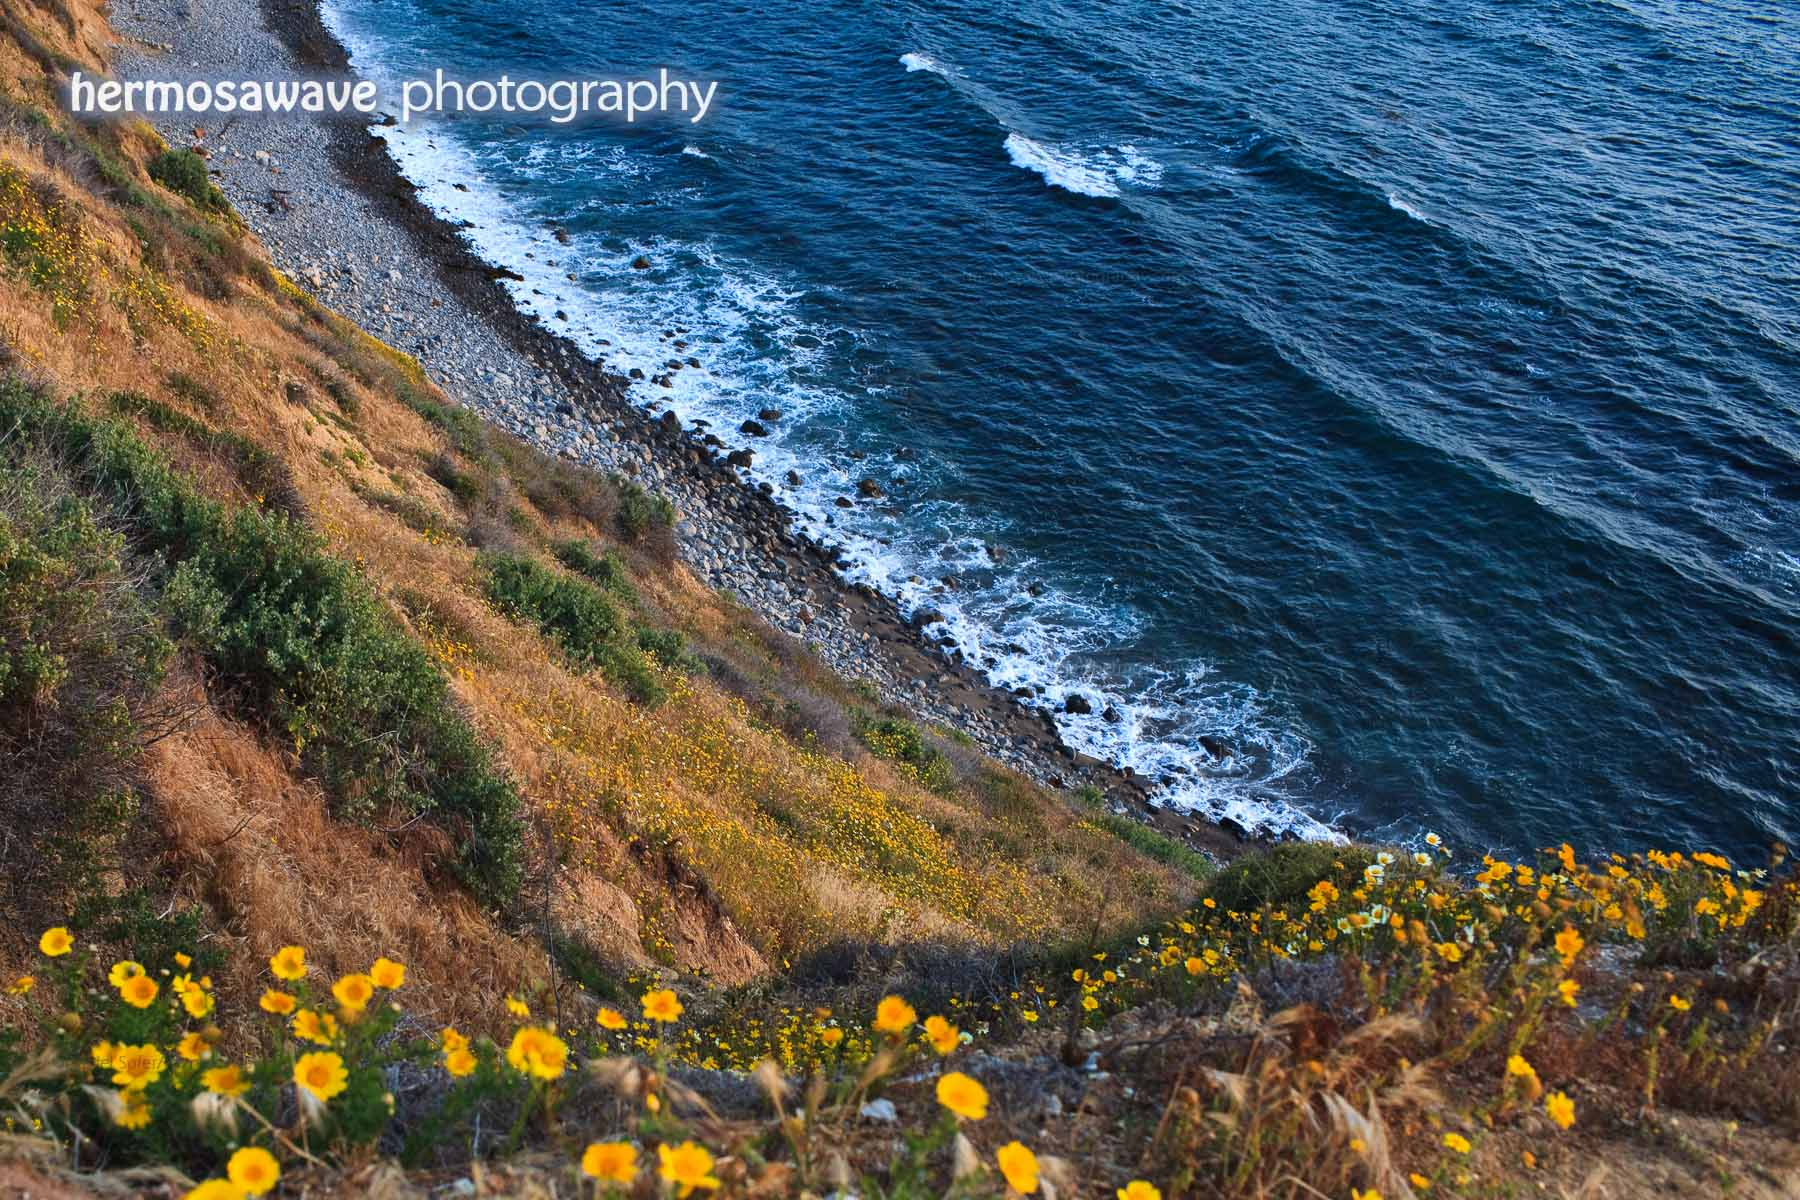 Daisies on the Bluff